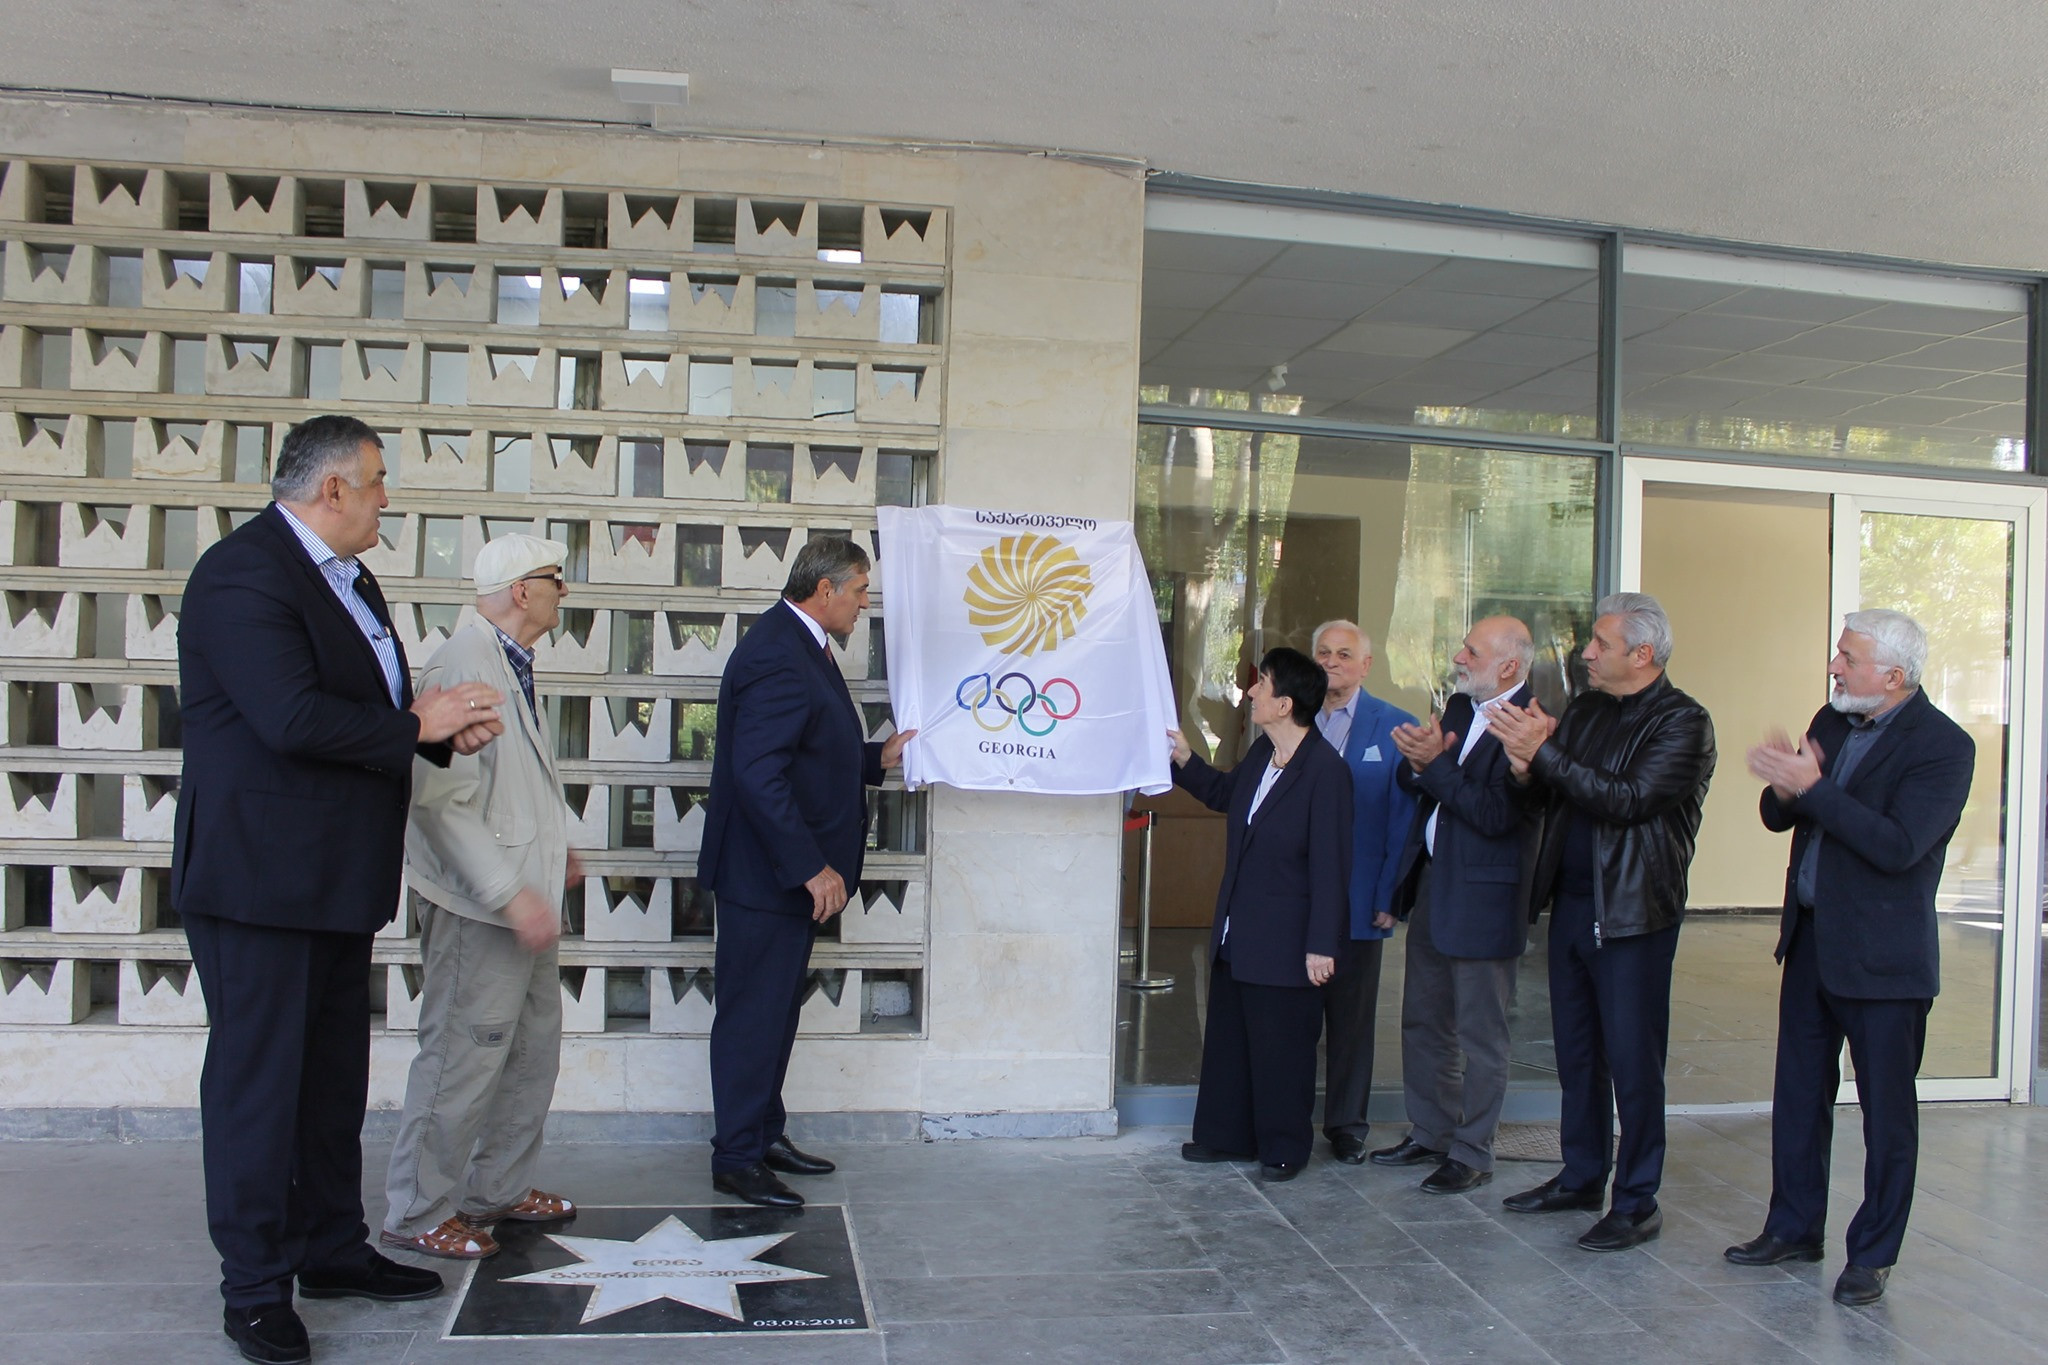 A memorial plague was revealed in celebration of the Georgian National Olympic Committee's 30th anniversary ©GNOC